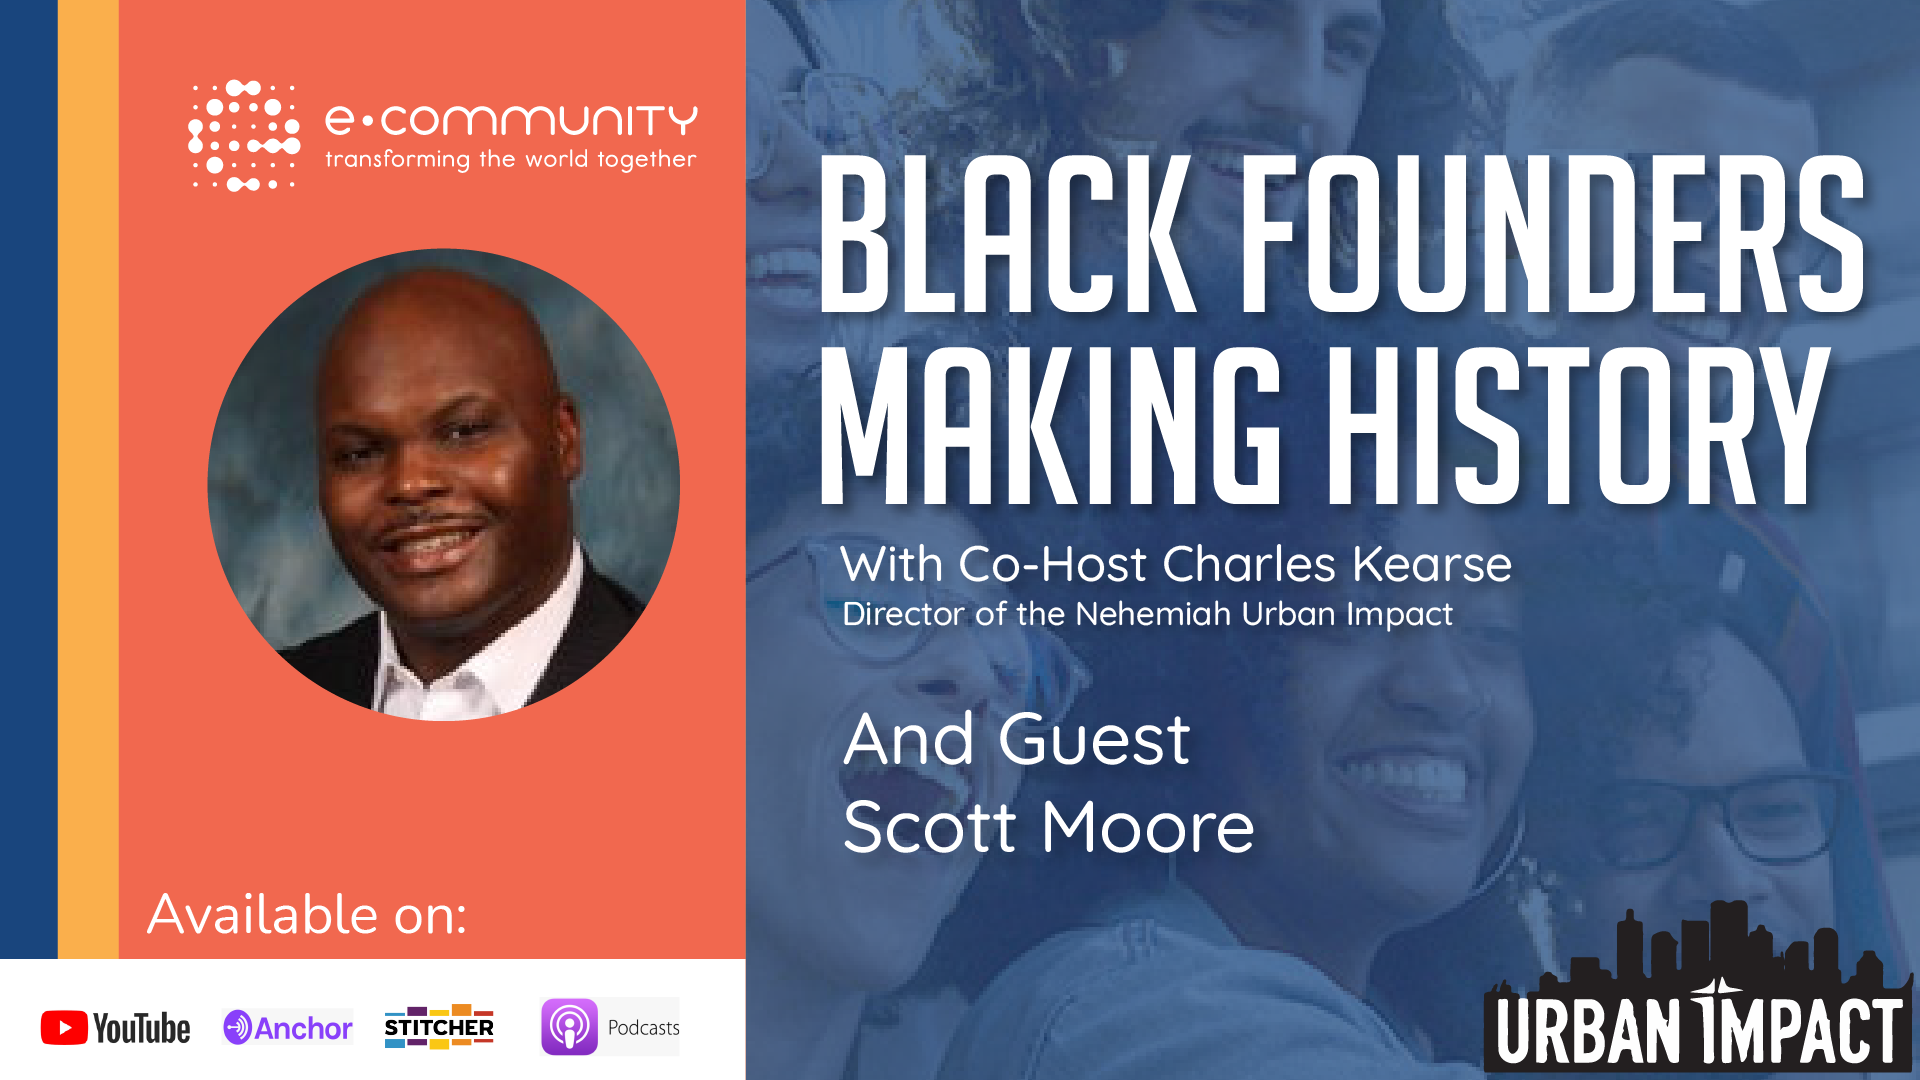 Black Founders Making History